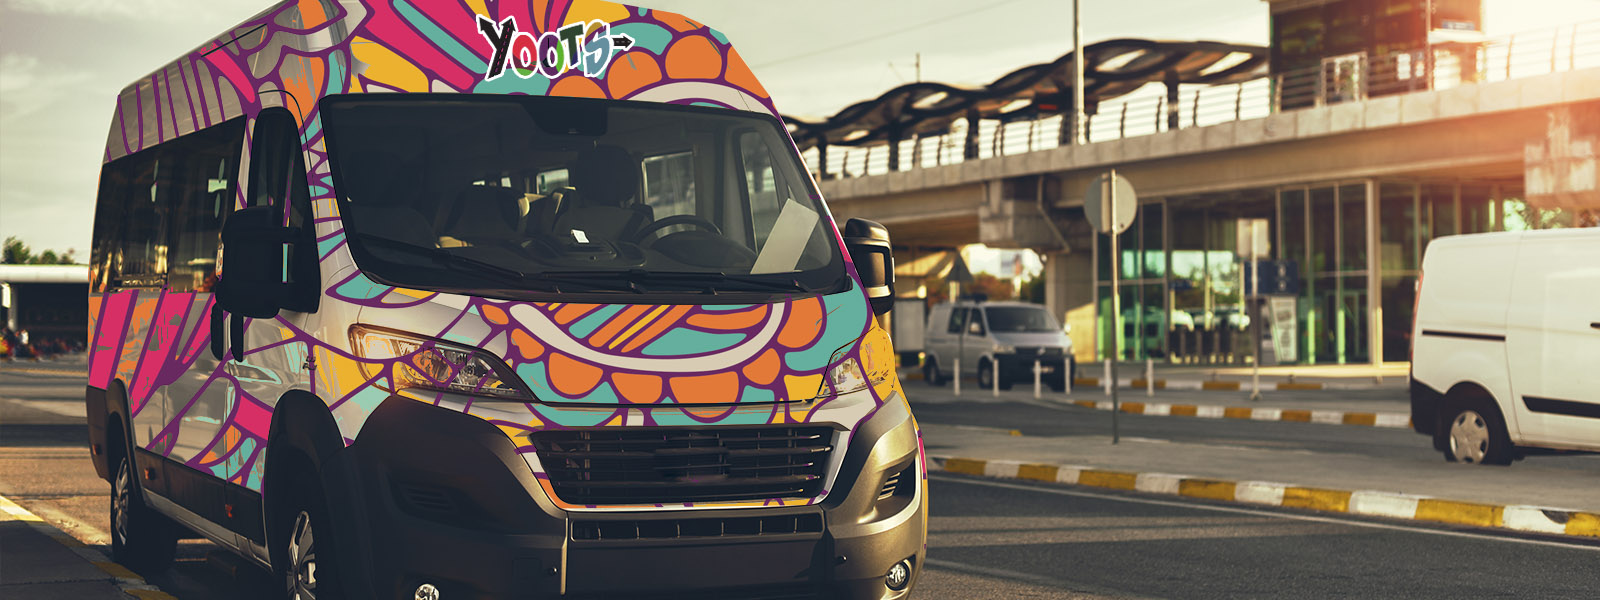 Yoots-VanRentals-Header copy